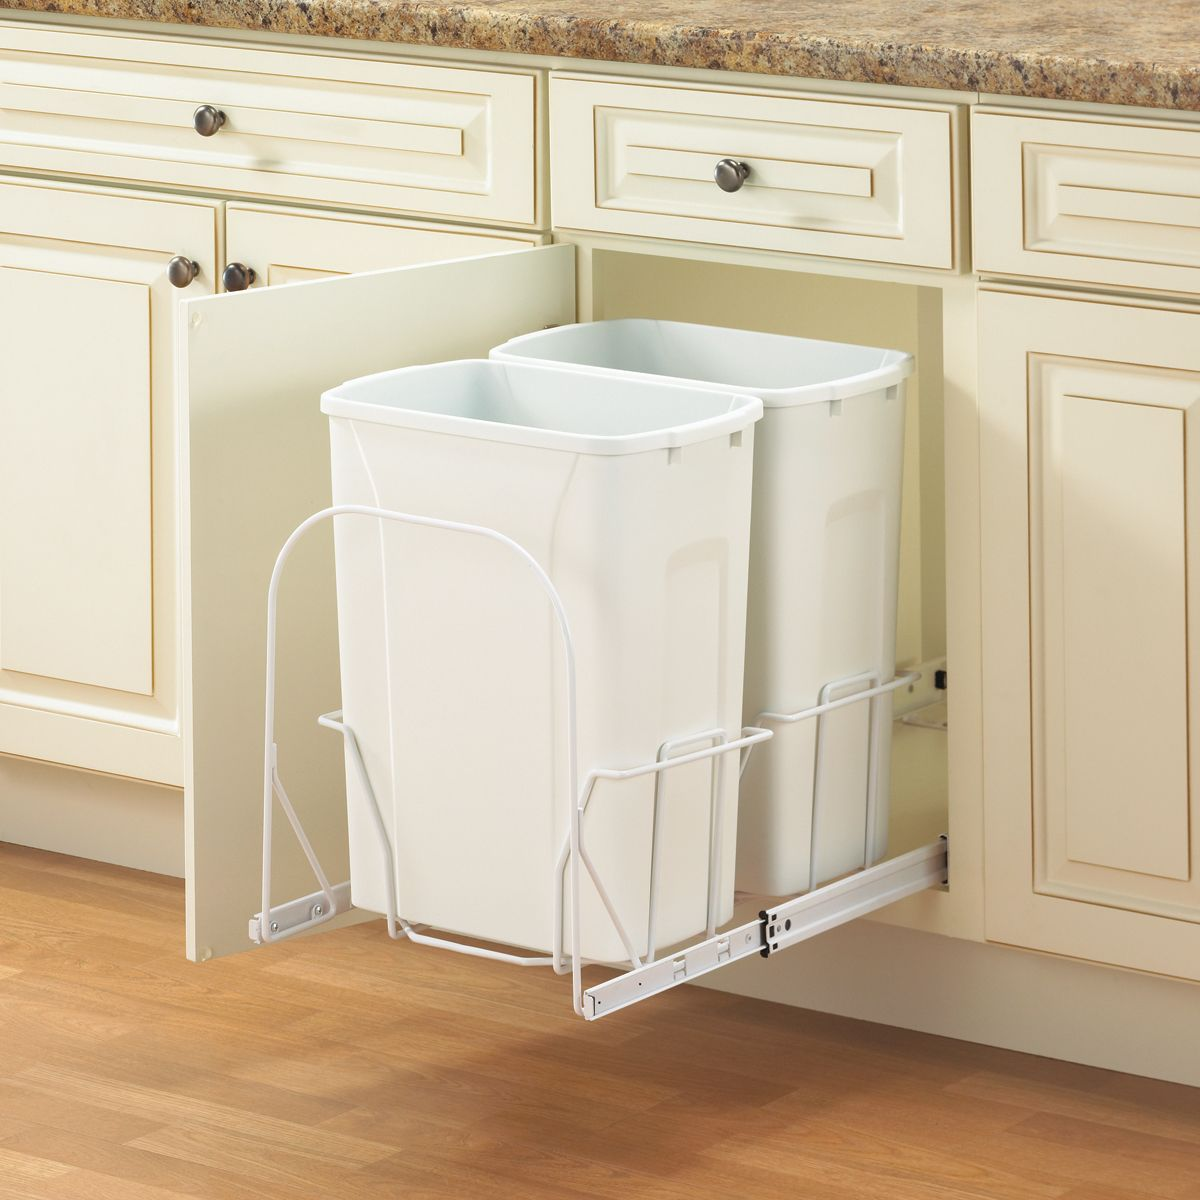 Knape and Vogt PSW15-2-35WH Waste Recycling Pull Out Trash Can at ...